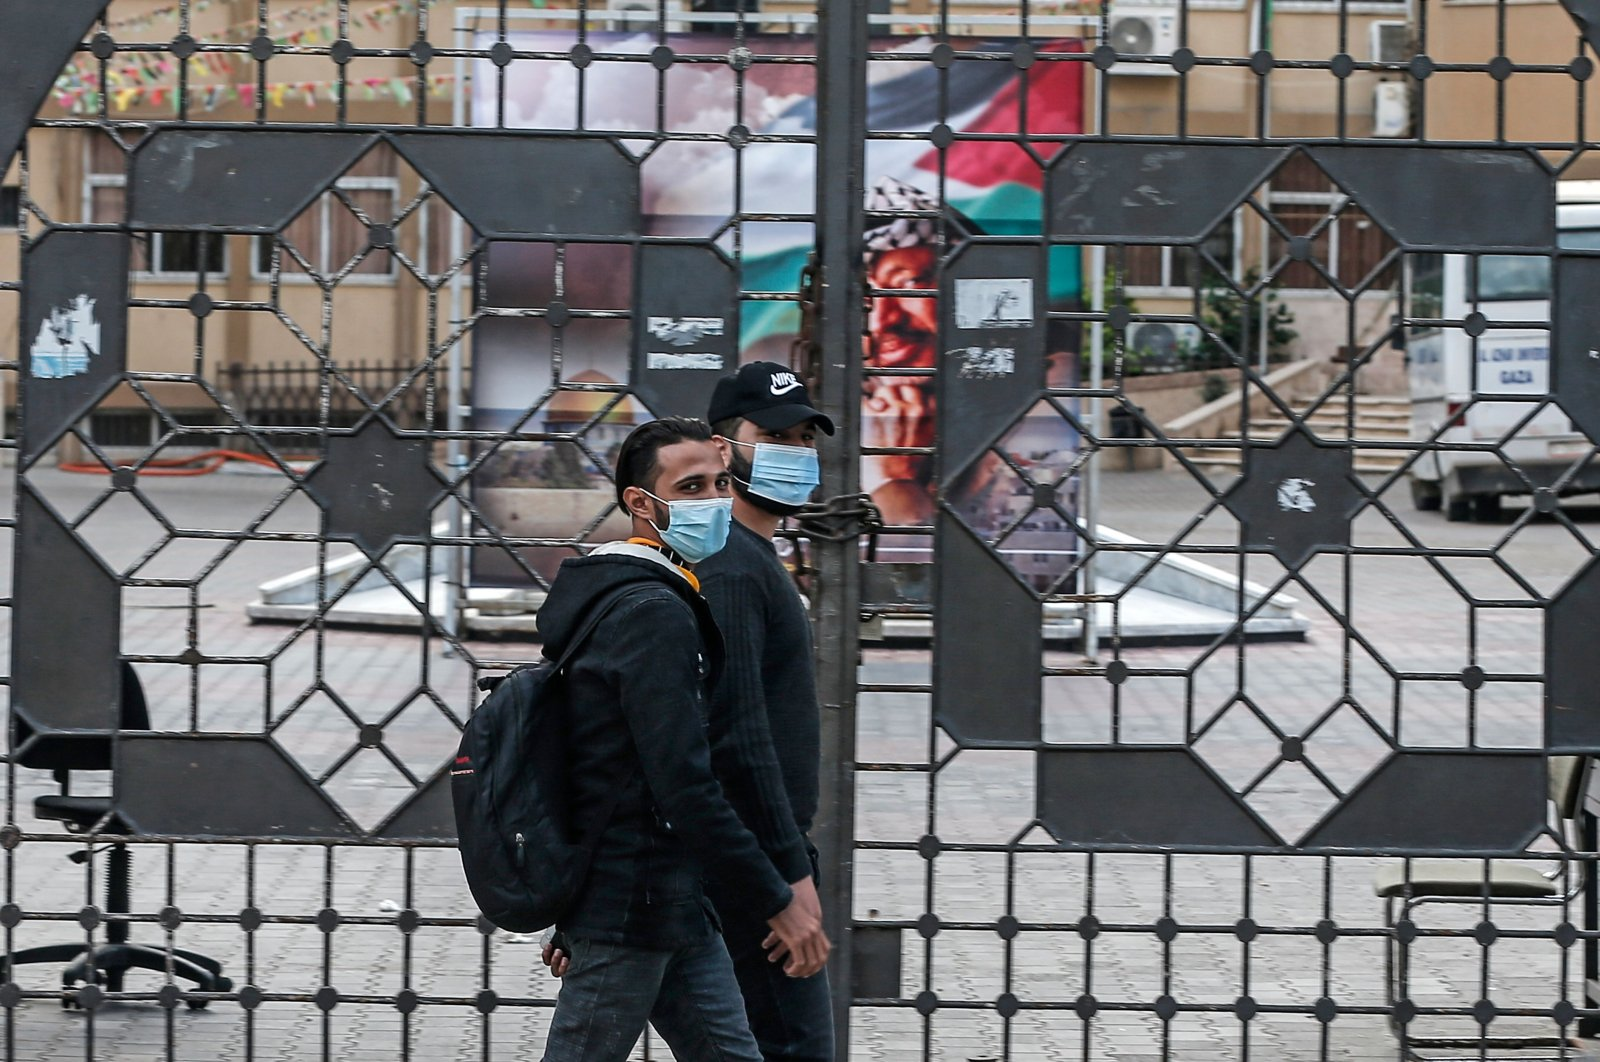 Palestinian men, wearing protective masks, walk past the closed gate of al-Azhar University in Gaza City amid new measures to counter the spread of the COVID-19 pandemic, Nov. 5, 2020. (AFP Photo)